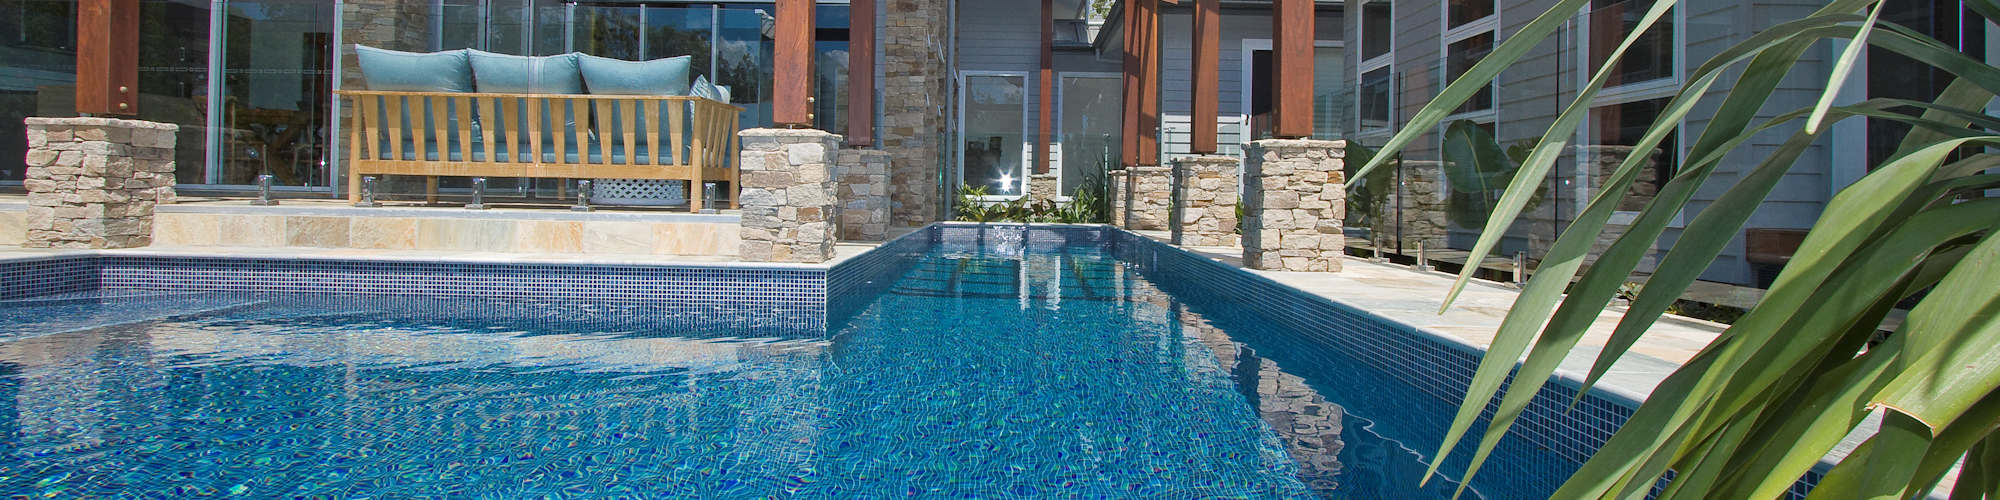 Pool Products and Services Header